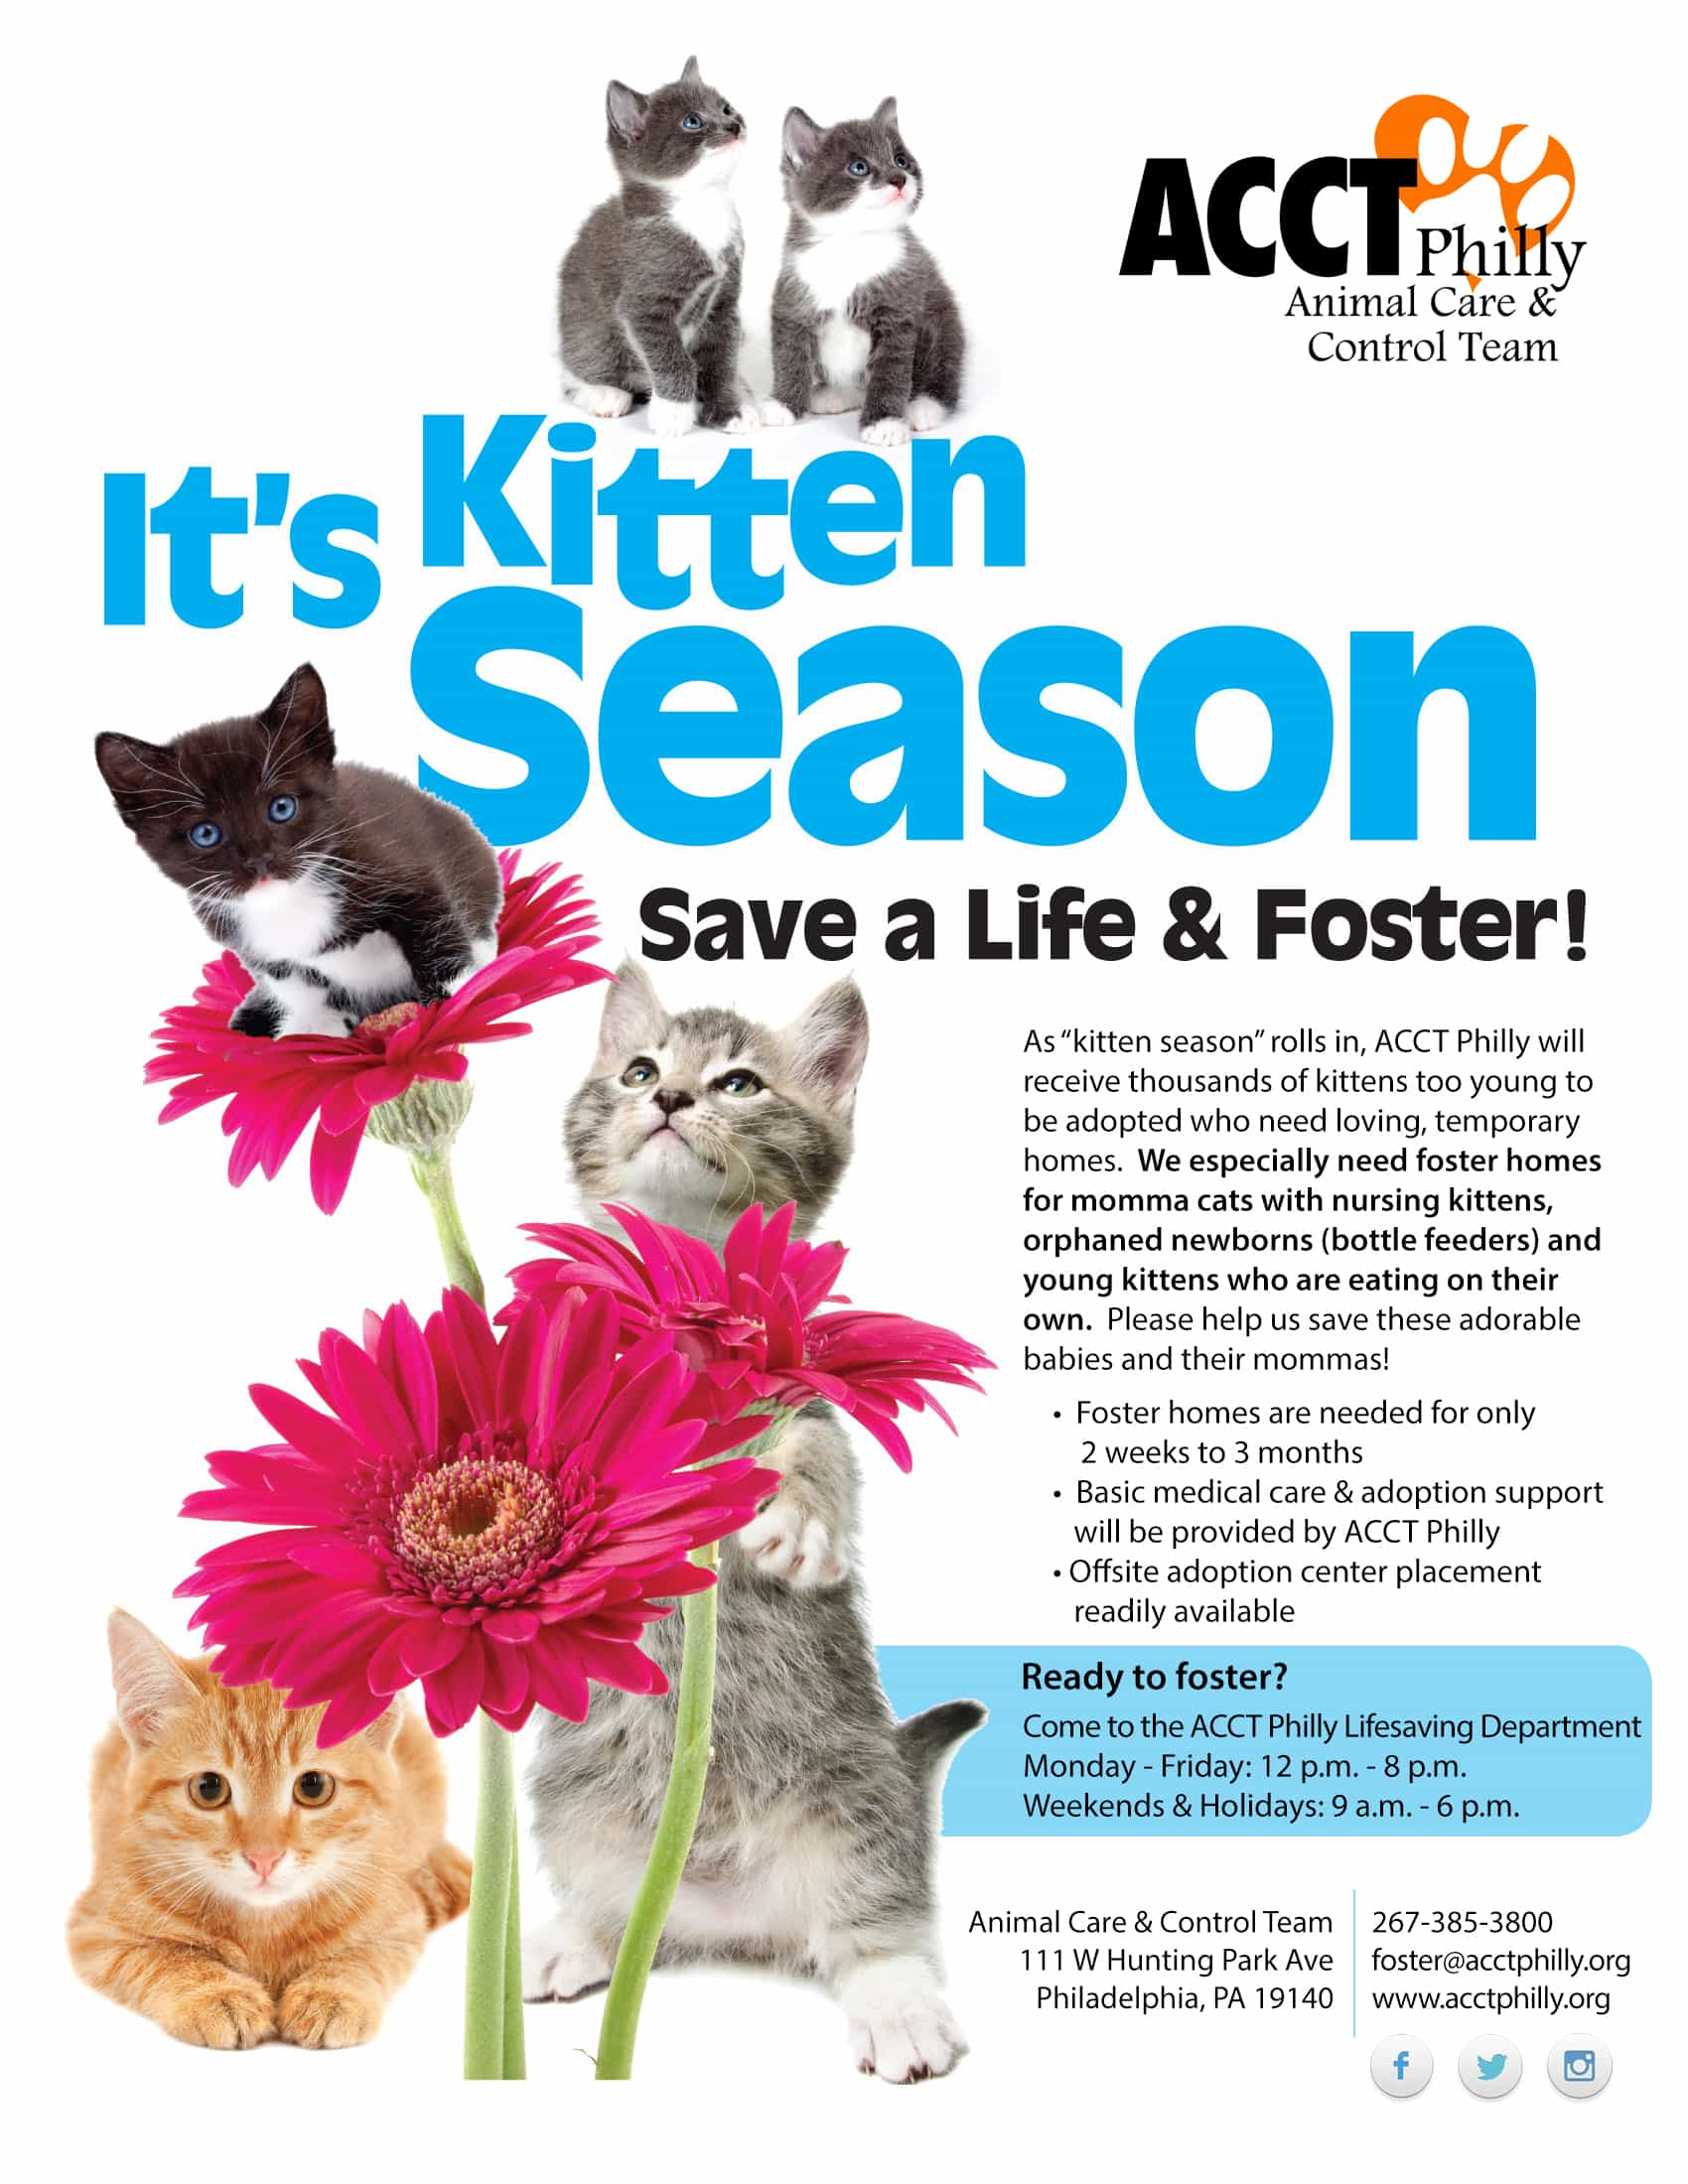 Kitten Foster Homes Needed Acct Philly